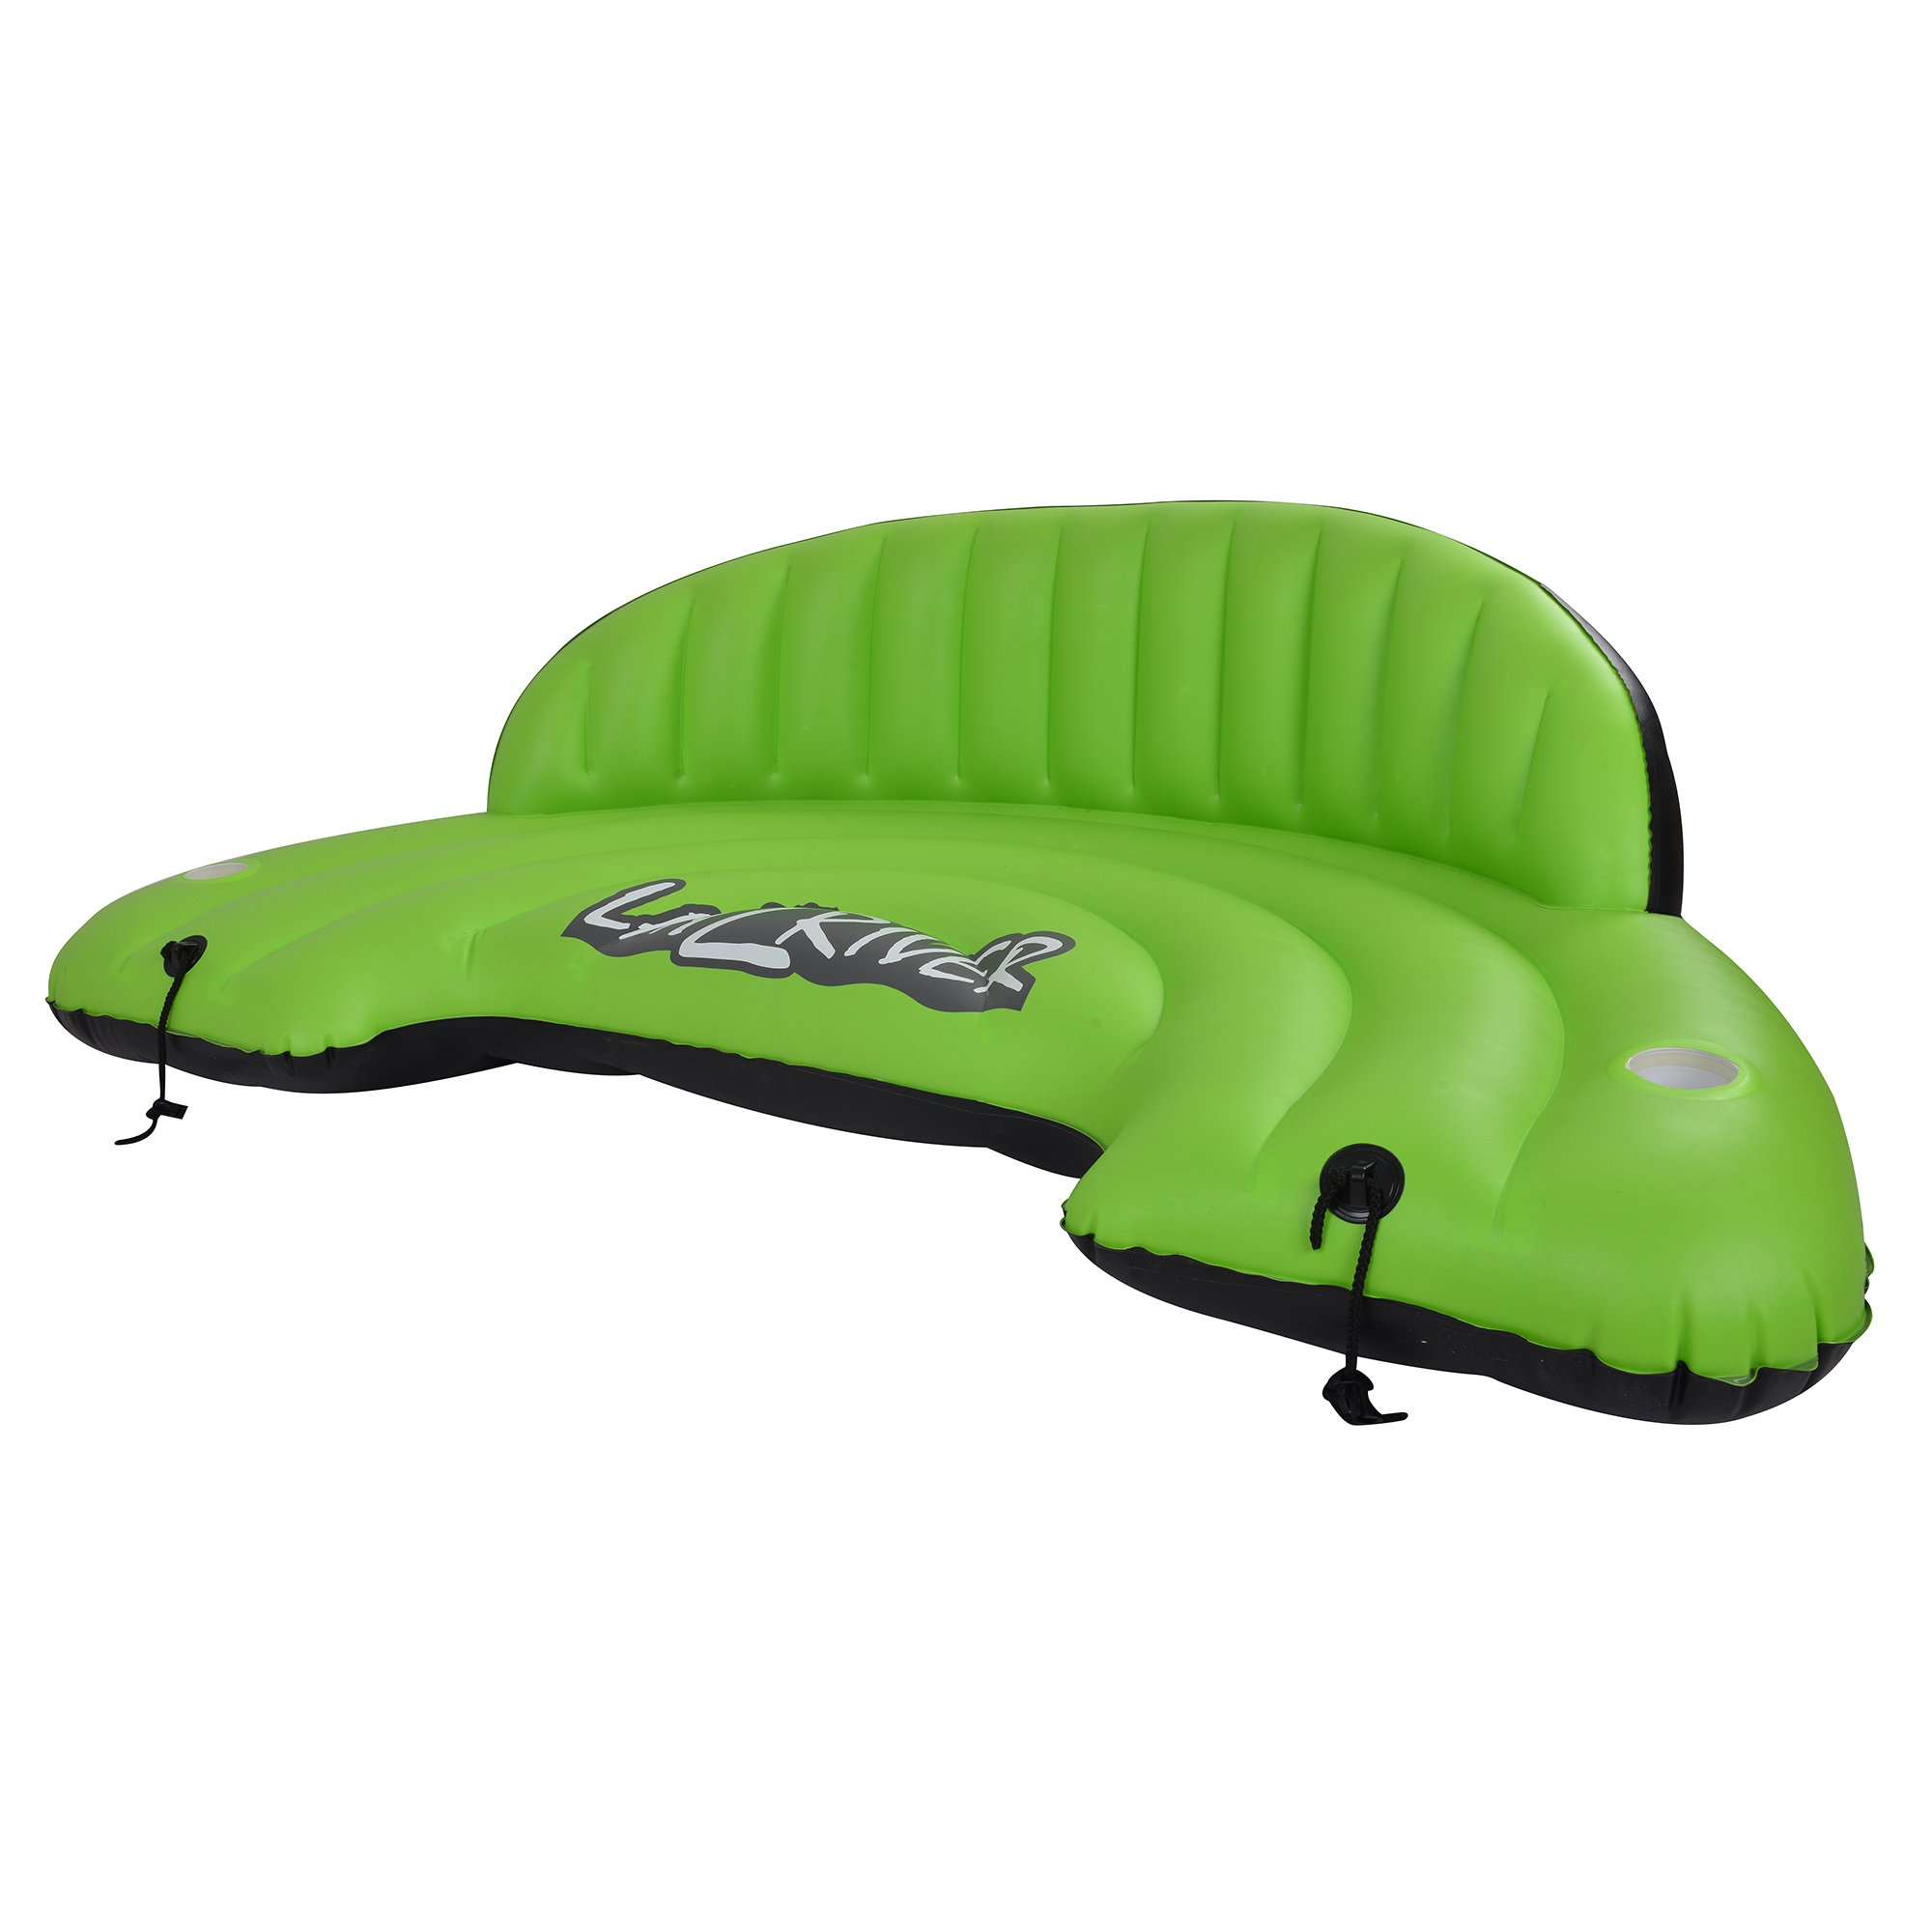 Blue Wave Sports Lay-Z-River Inflatable Sofa, Green/Black